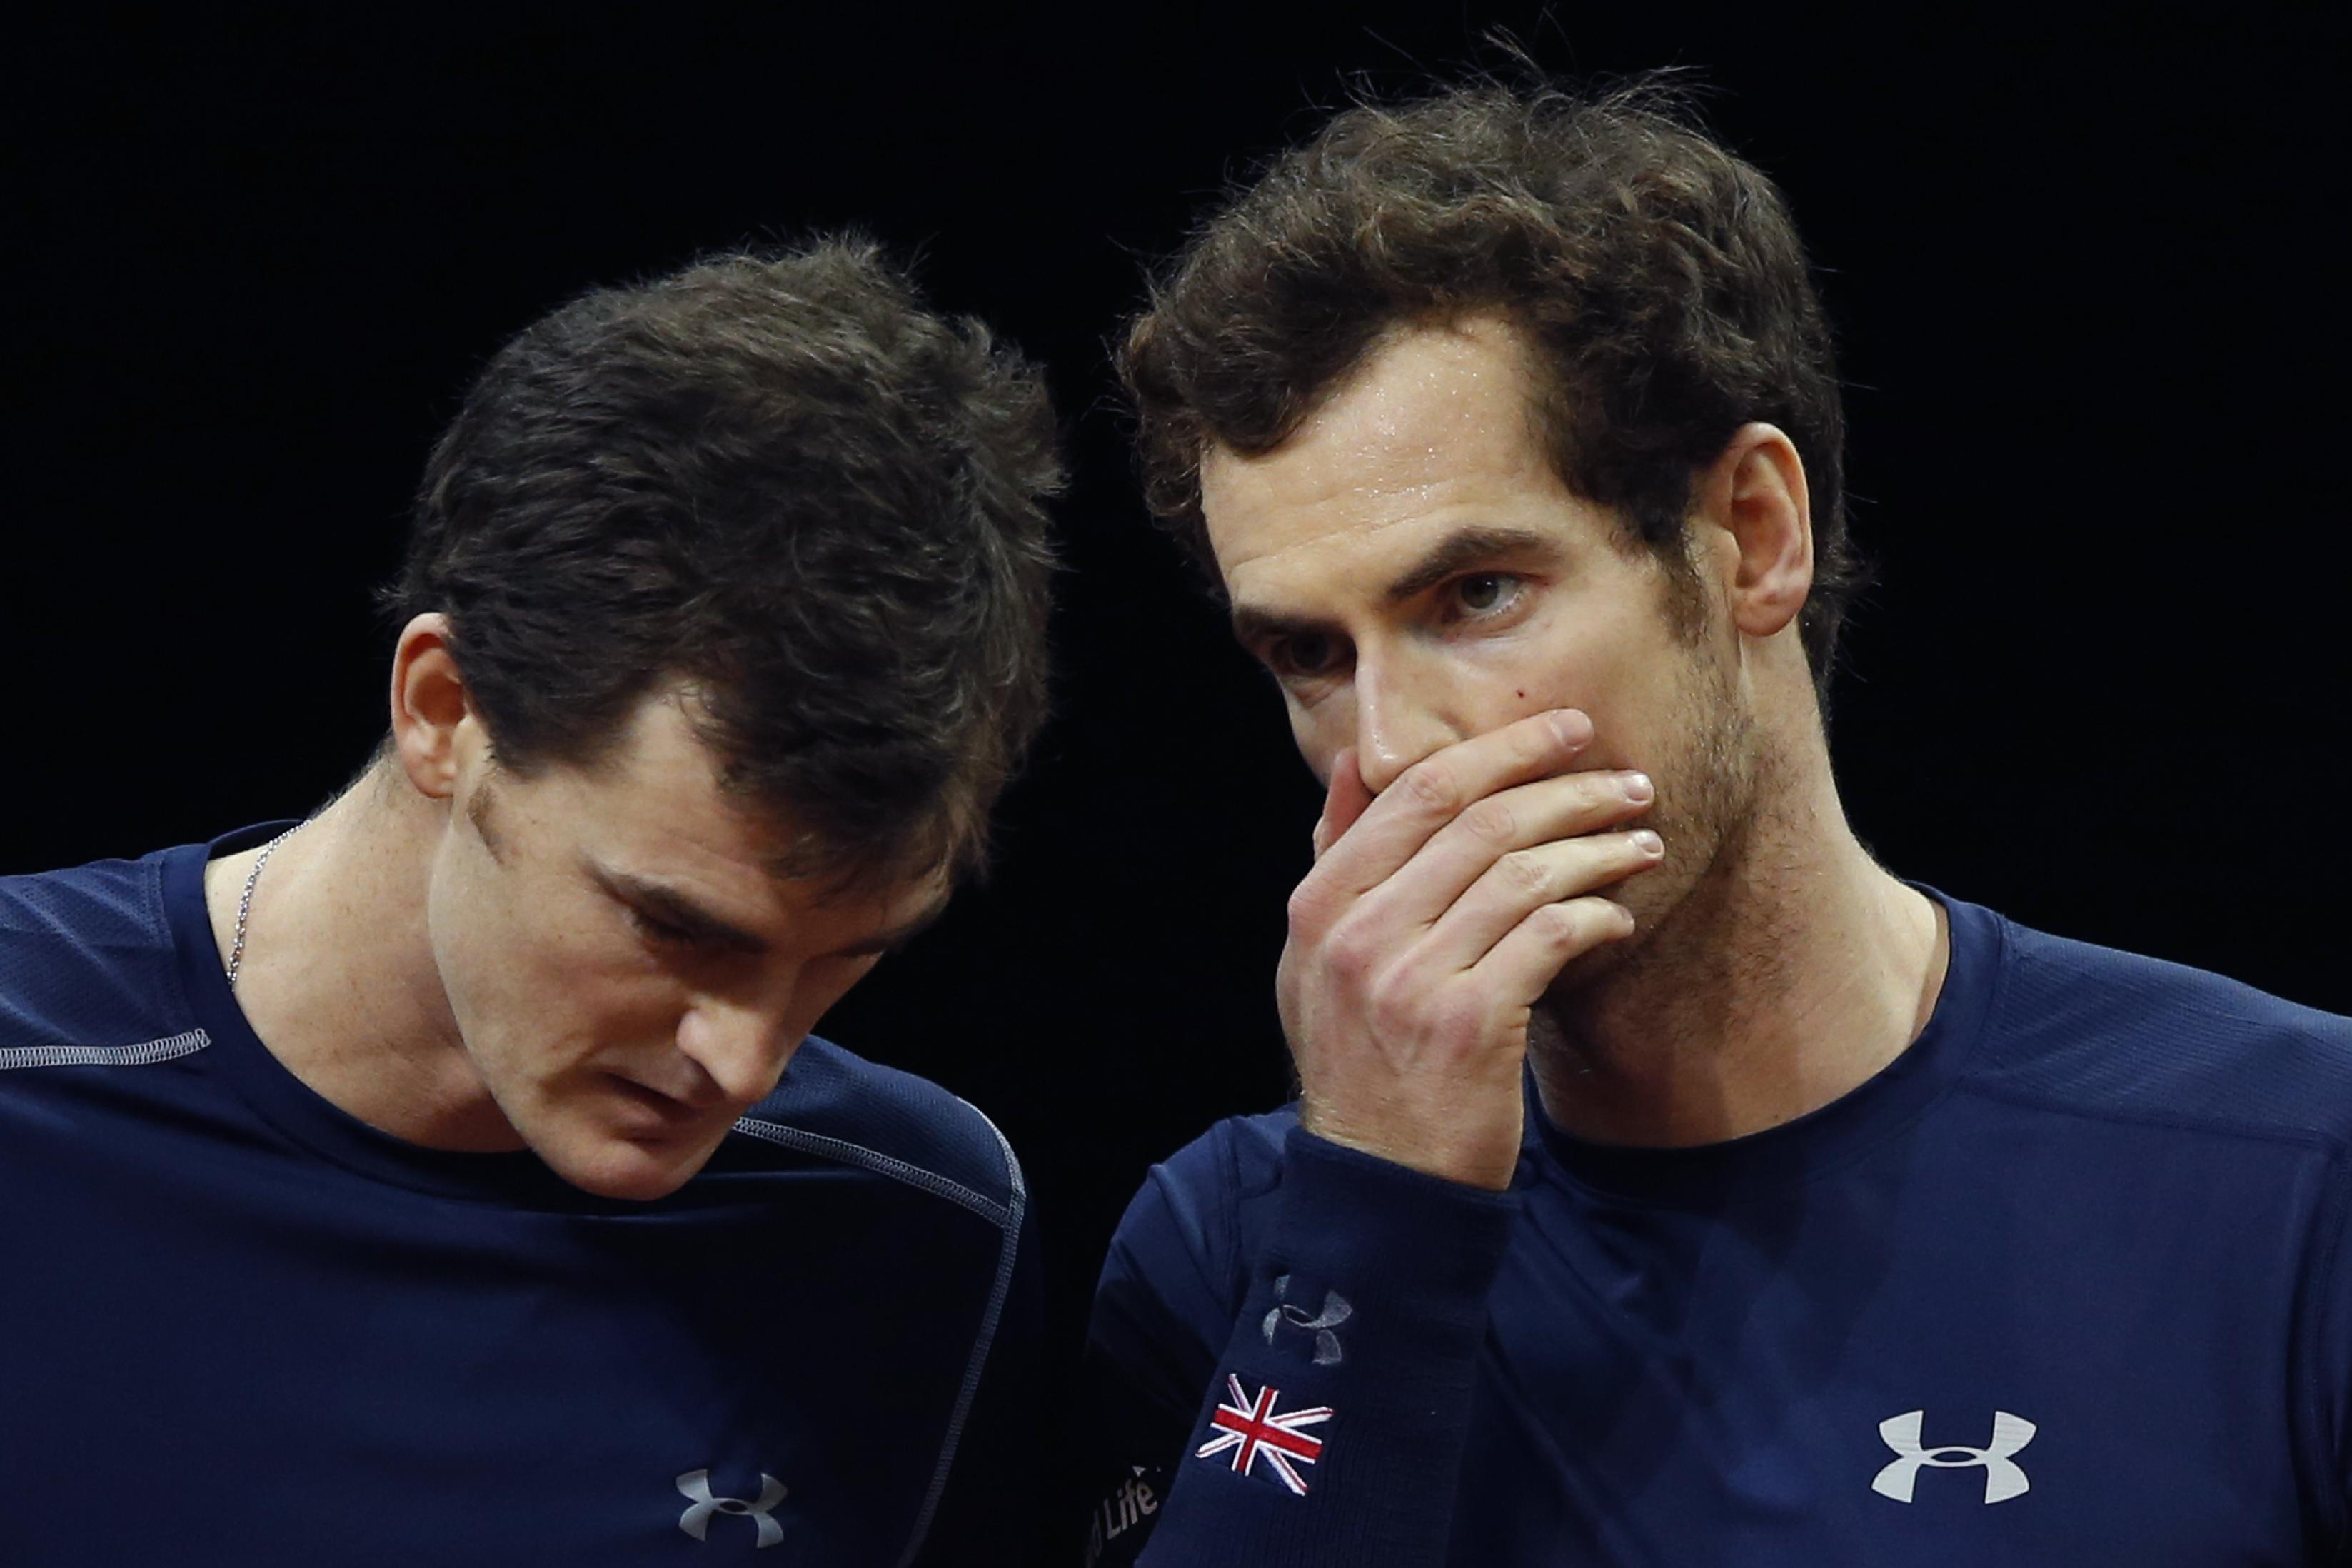 Britain wins doubles, 1 point away from Davis Cup title